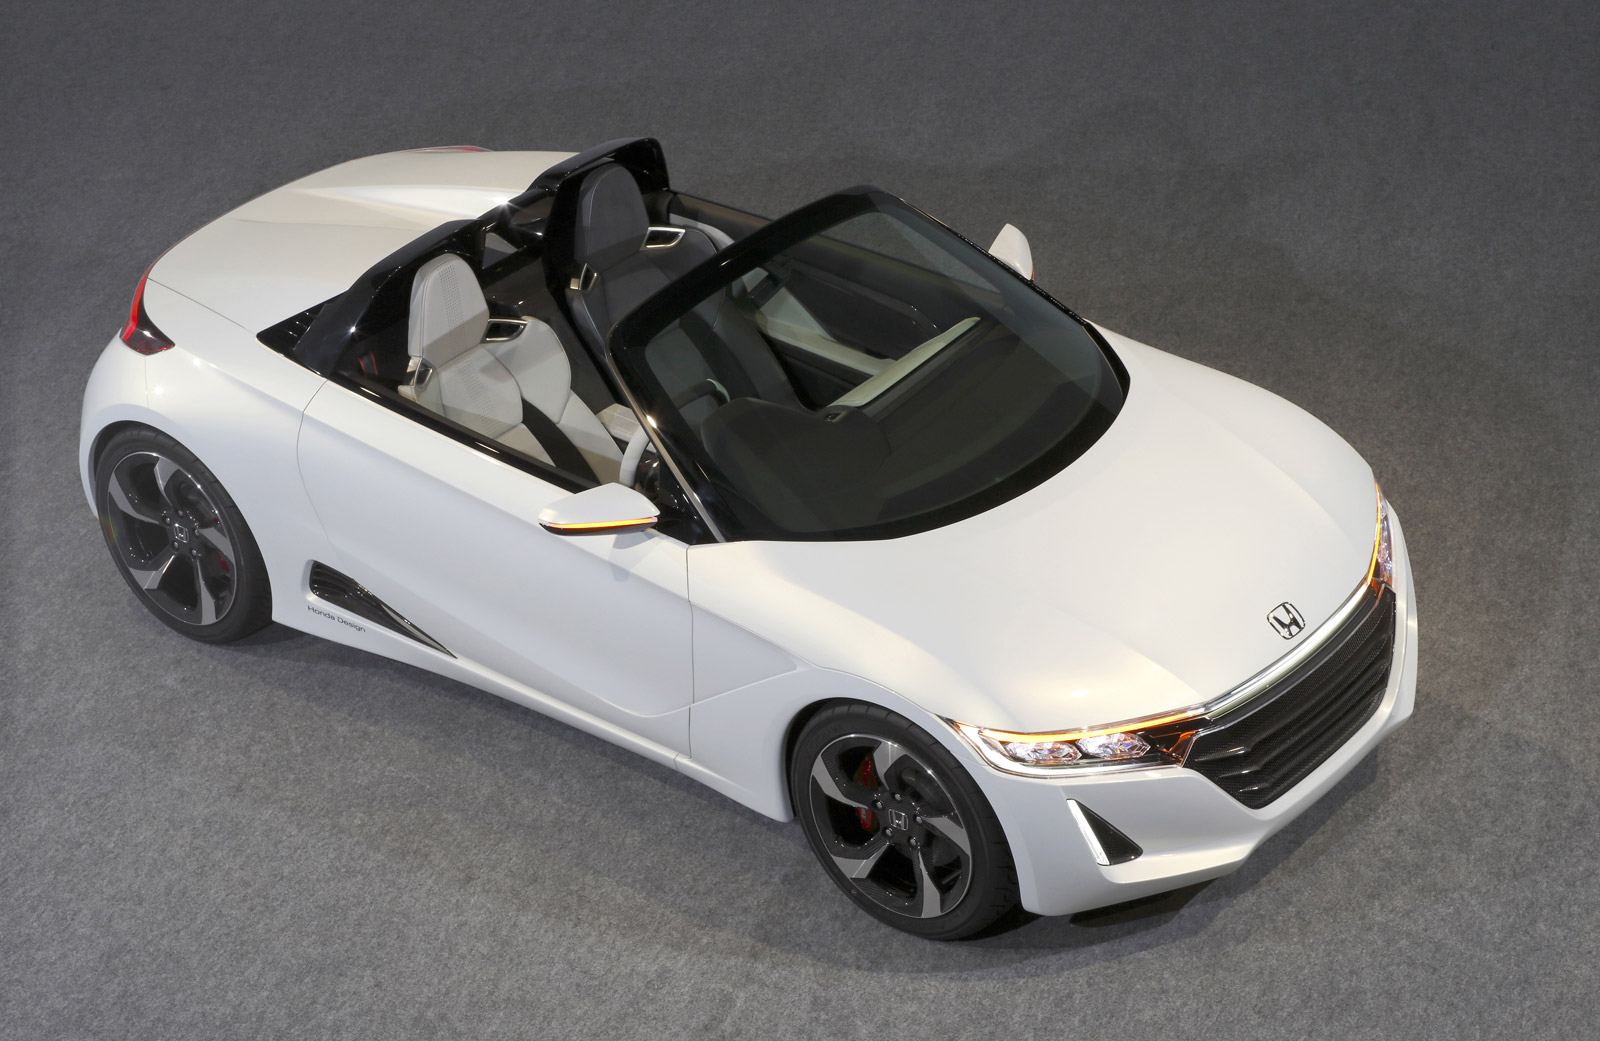 64 Best 2020 Honda S660 Review and Release date